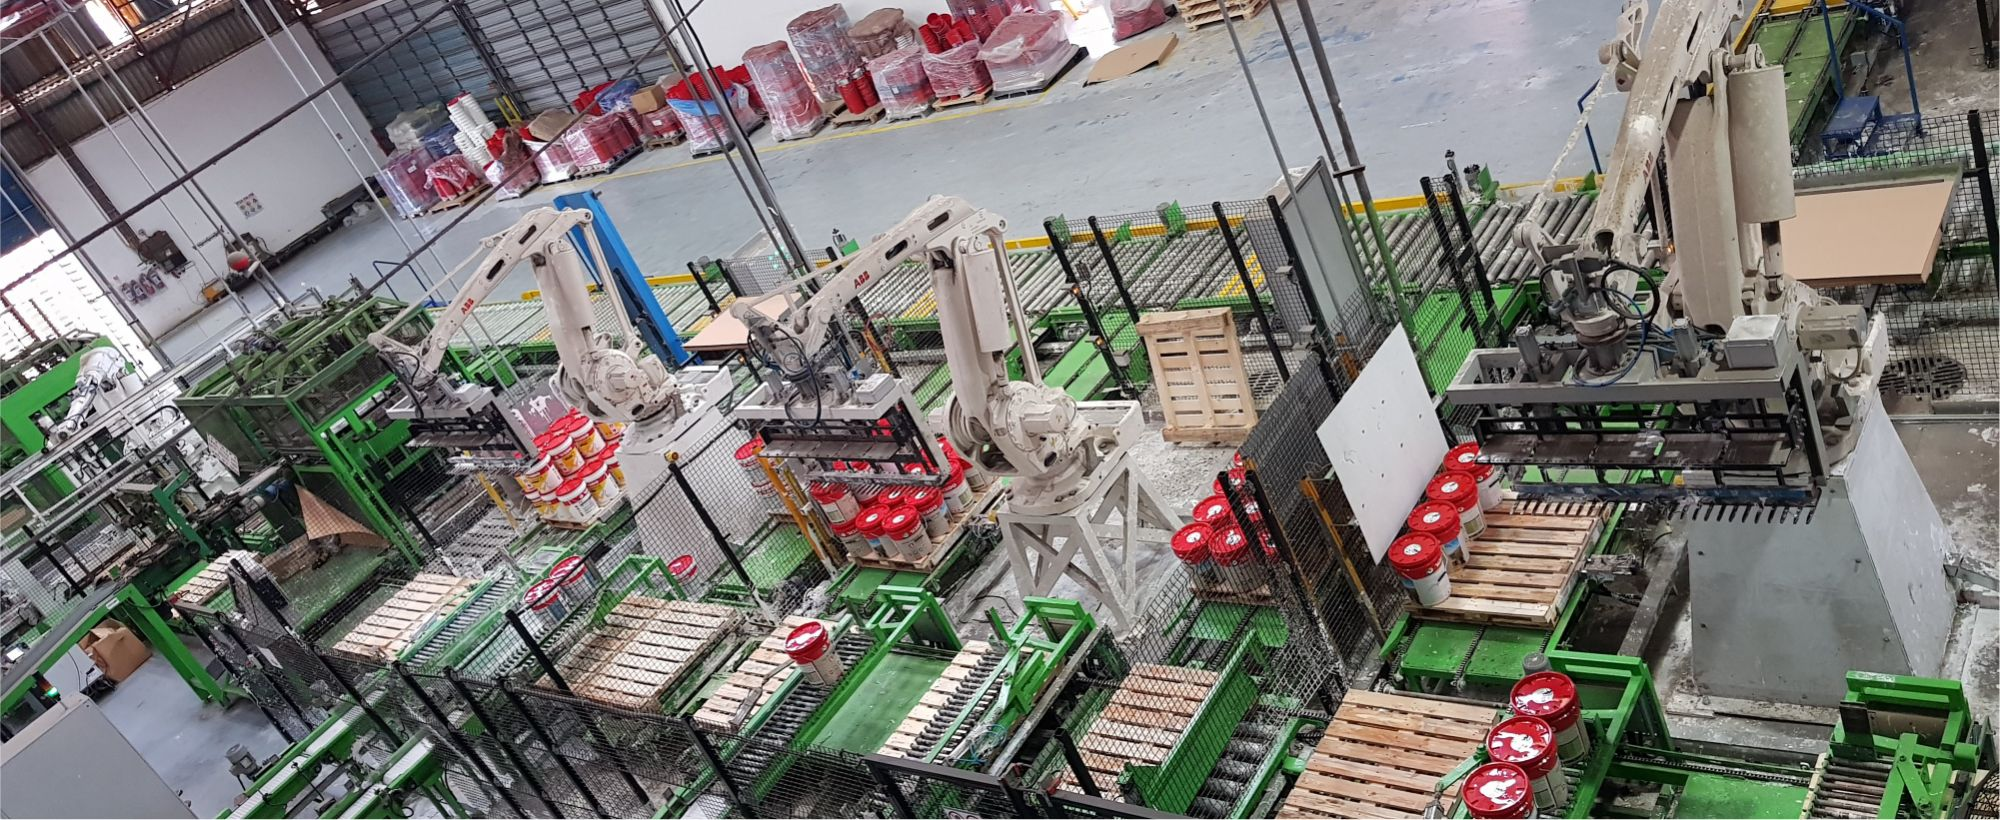 Tambour.  Packaging system